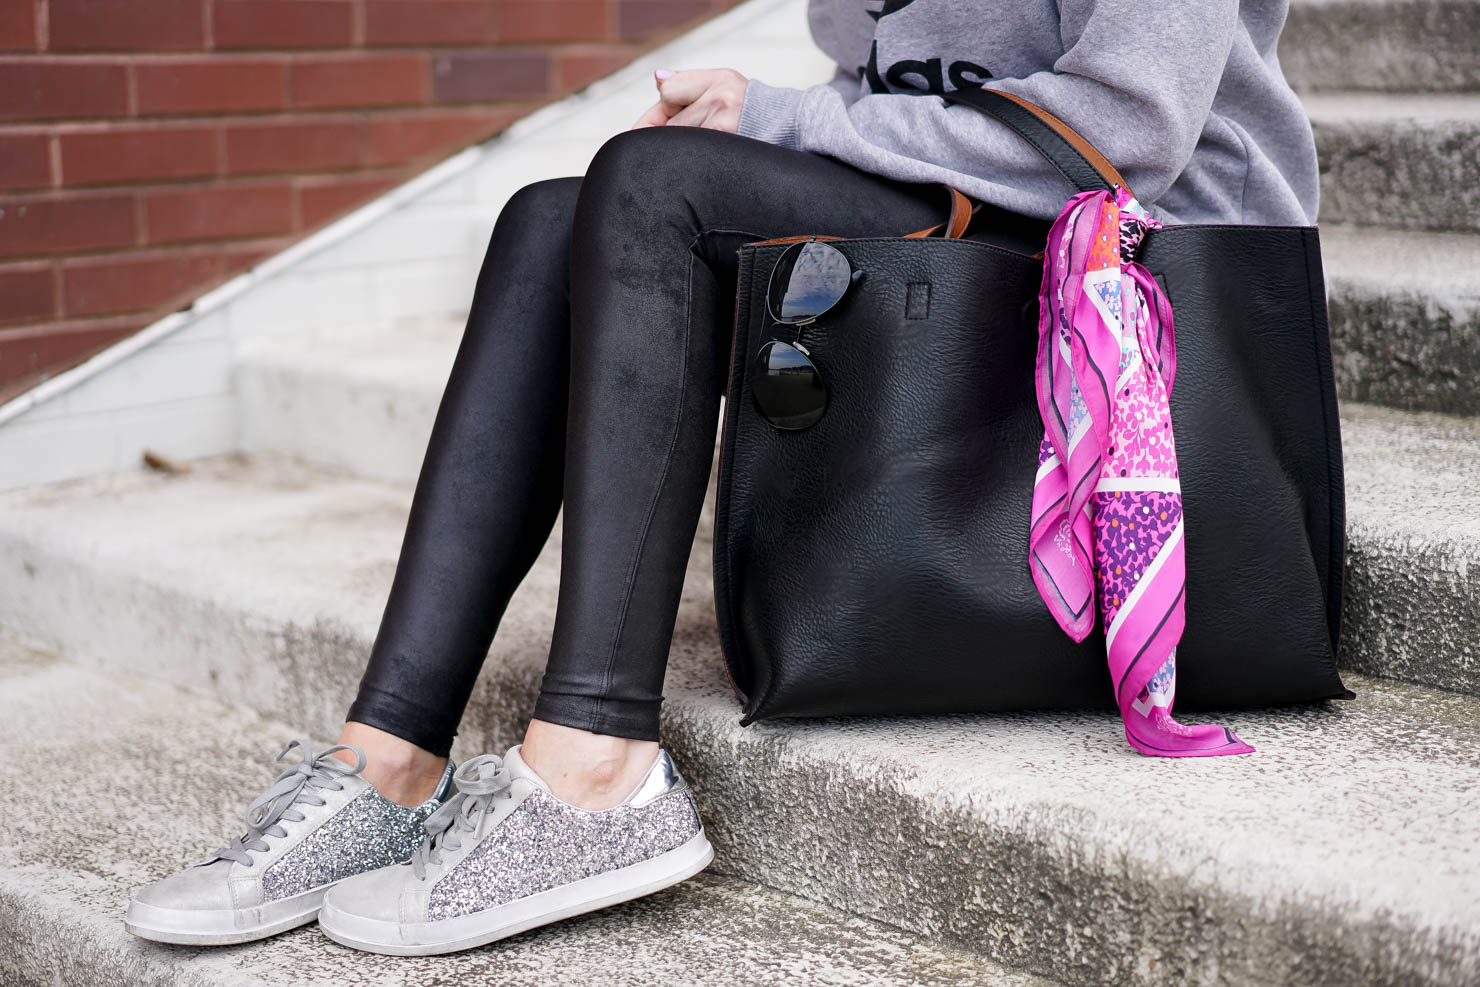 athleisure trend, my love of athleisure, the faux leather leggings that will change your life, faux leather leggings anyone can wear, the most slimming legging, sucks you in but still comfortable